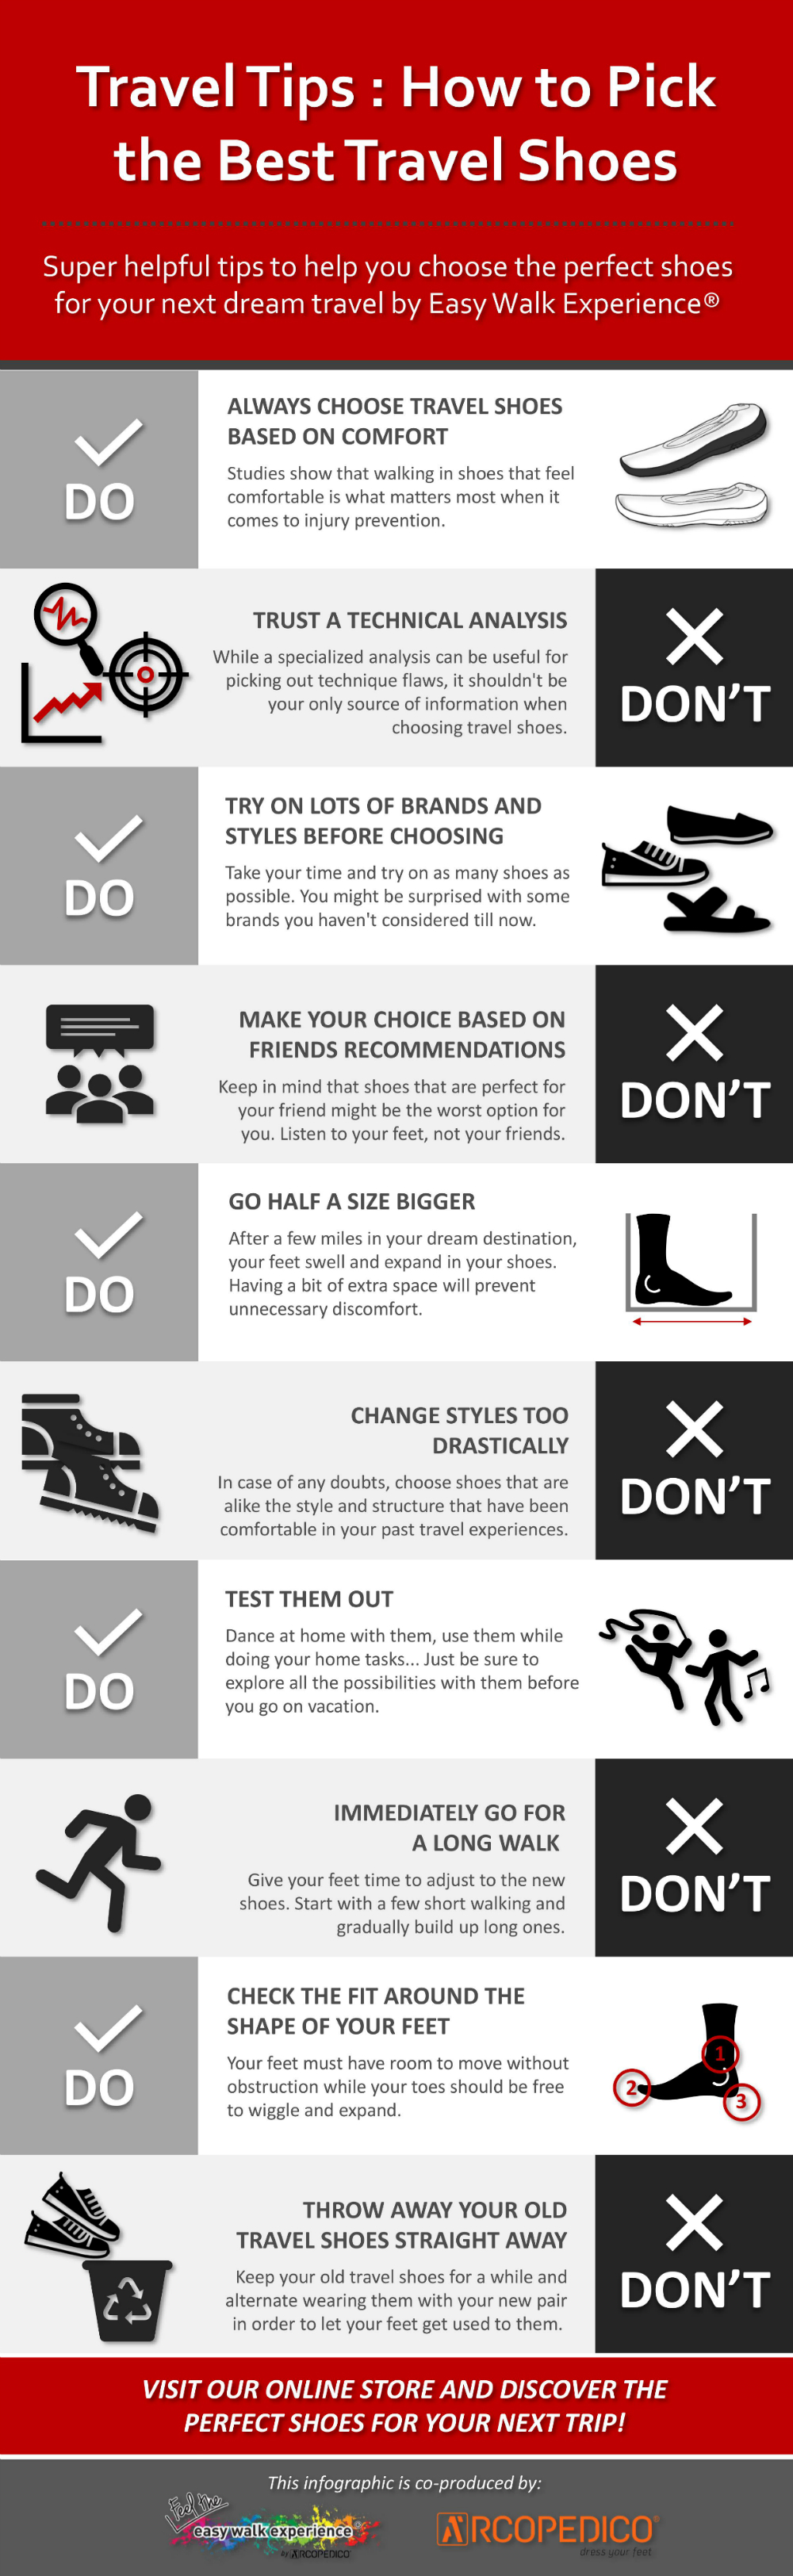 Travel Tips: How to Pick the Best Travel Shoes - If you're gearing up for one of those adventures in one of your dream destinations, an extremely worthwhile tip to keep in mind is when picking the perfect shoes, they must be stylish and yet comfortable. Therefore, you must check this super helpful infographic full of golden tips on how to choose the best travel shoes for your next dream travel. Check it out!